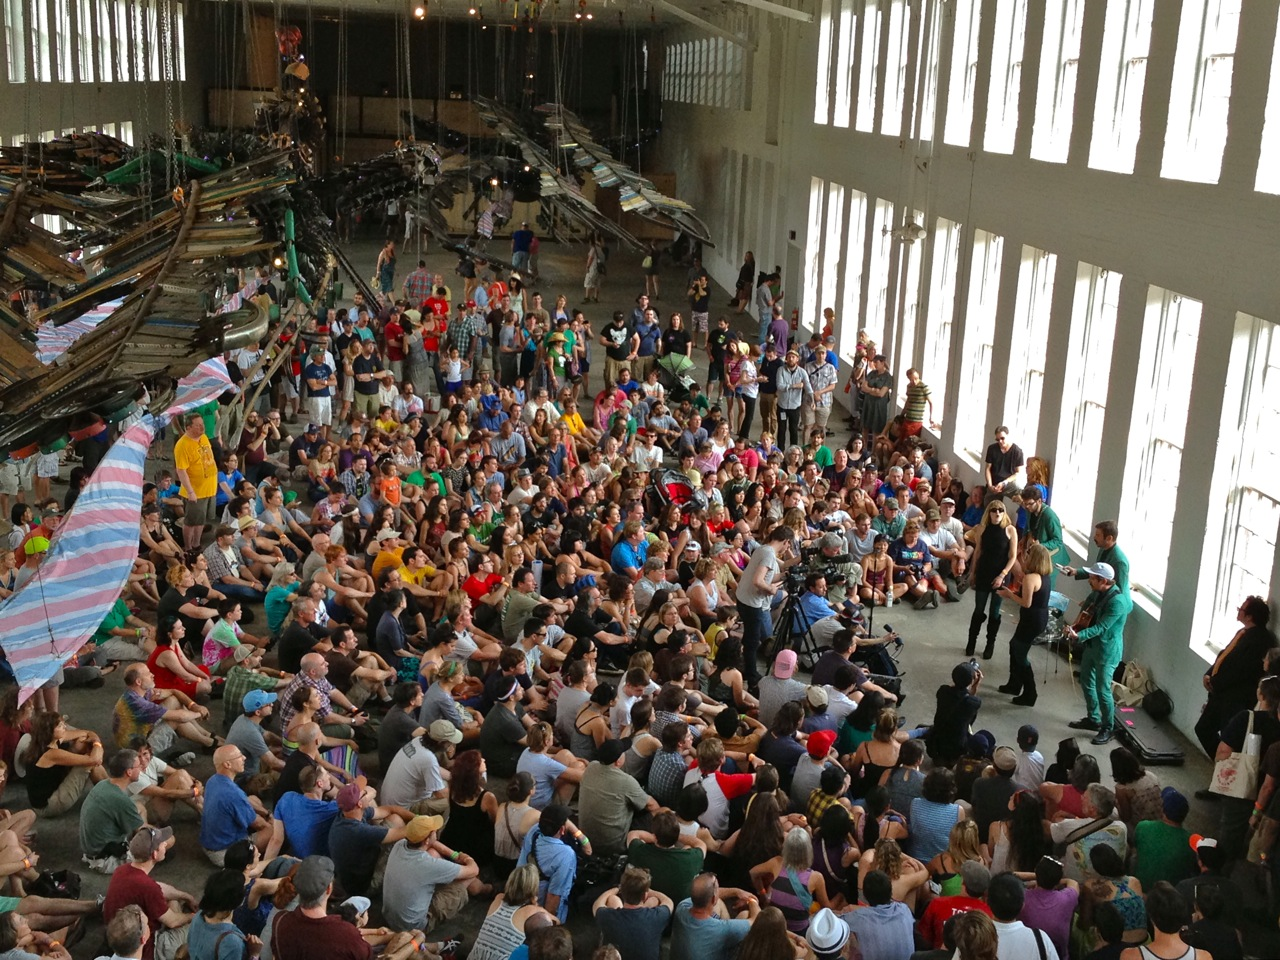 One of the highlights of Solid Sound is surprise pop-up concerts which occur throughout the museum during the festival. (Photo by Michelle Aldredge)